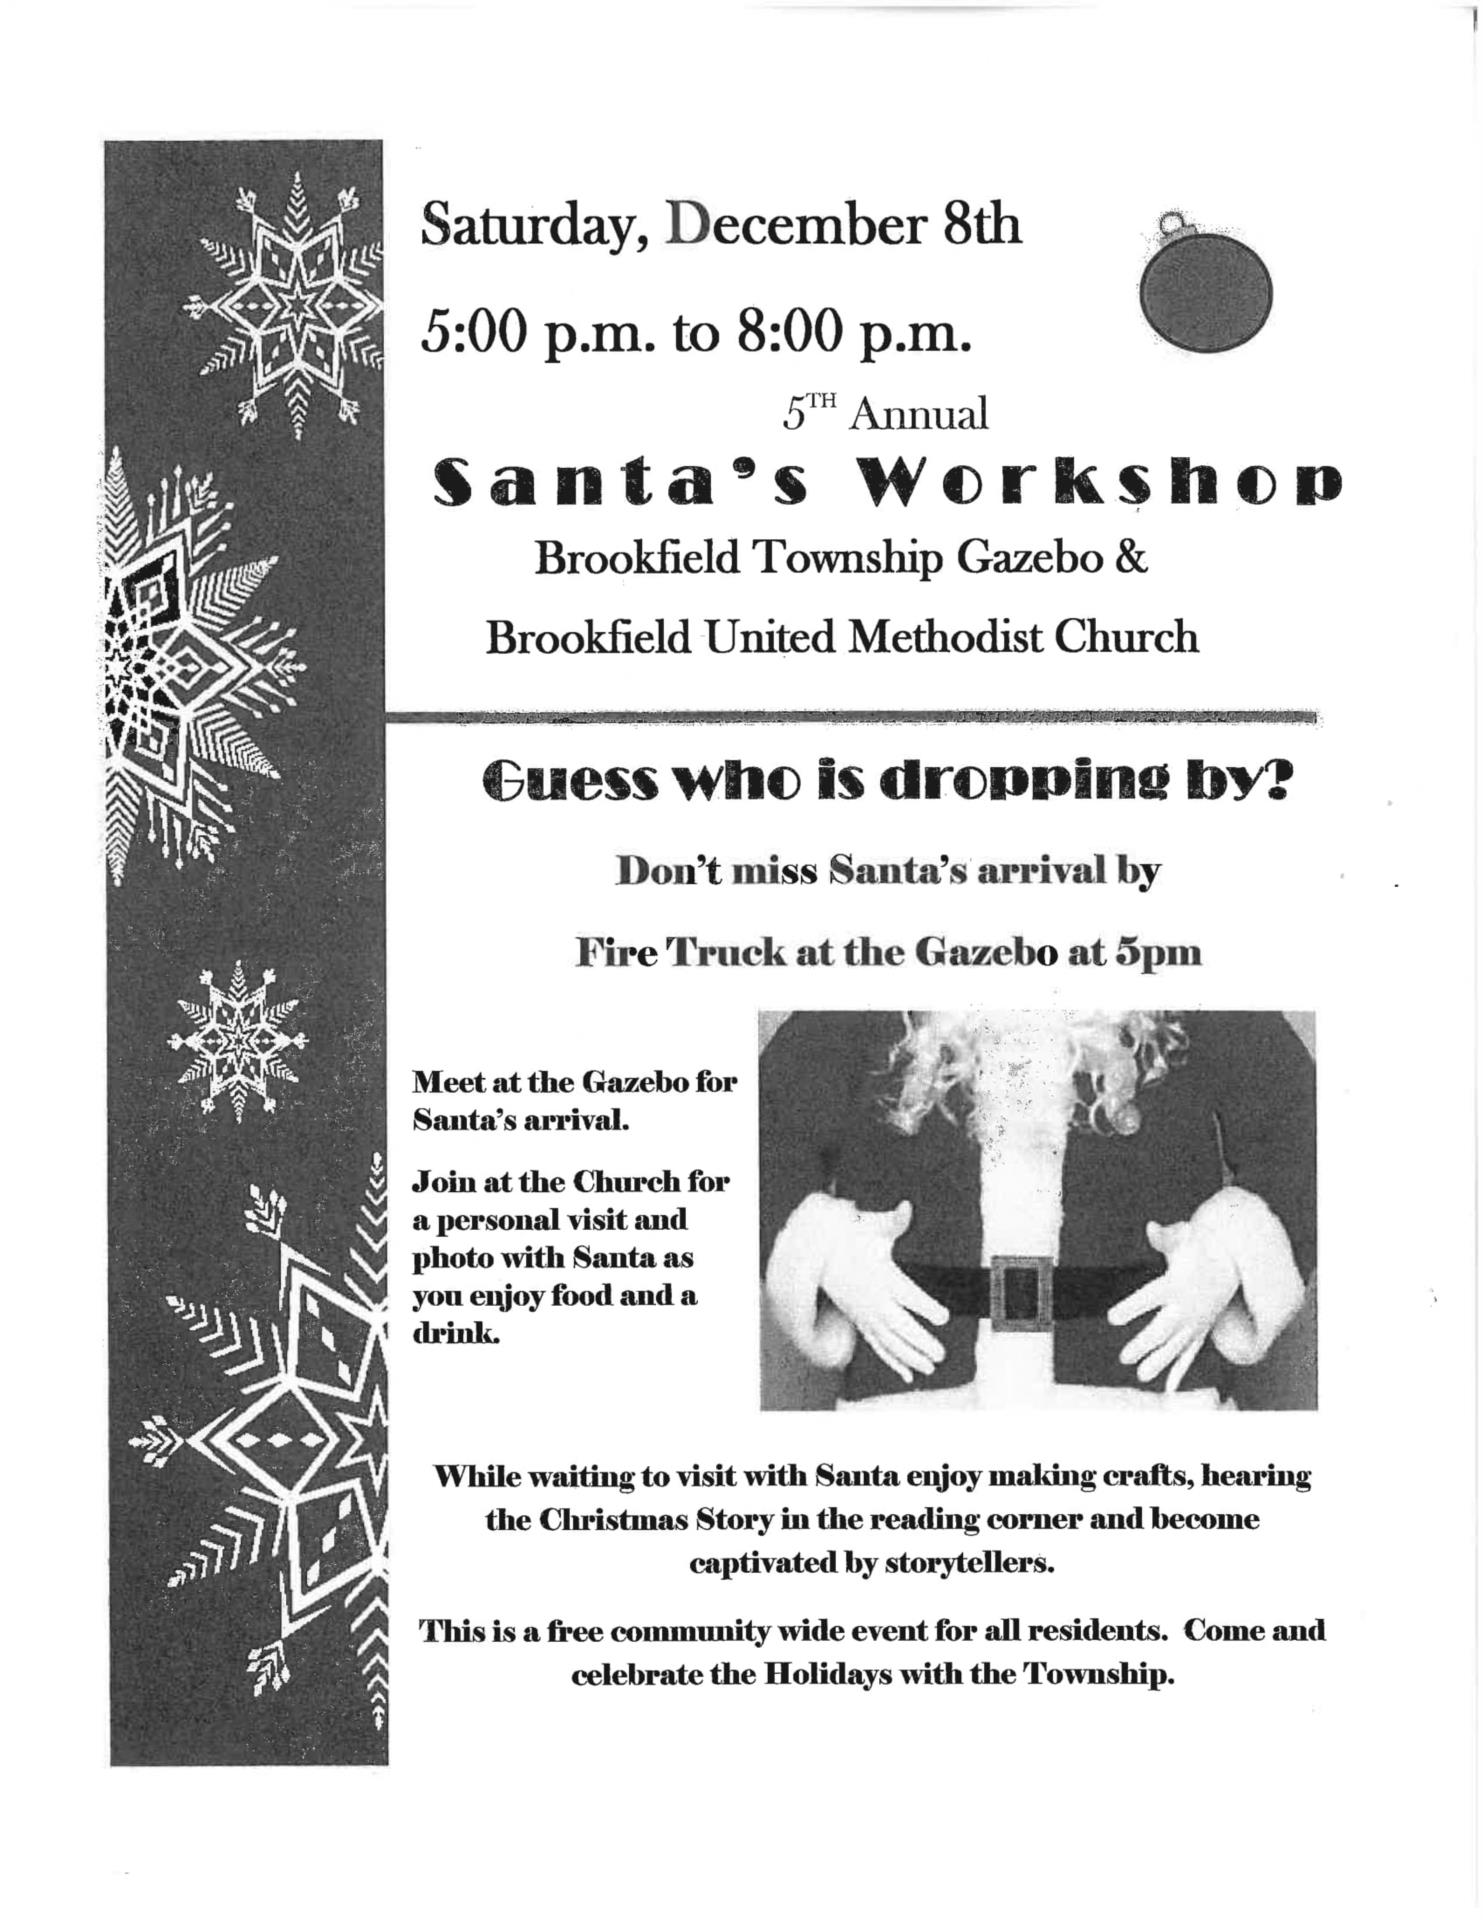 santa's workshop information